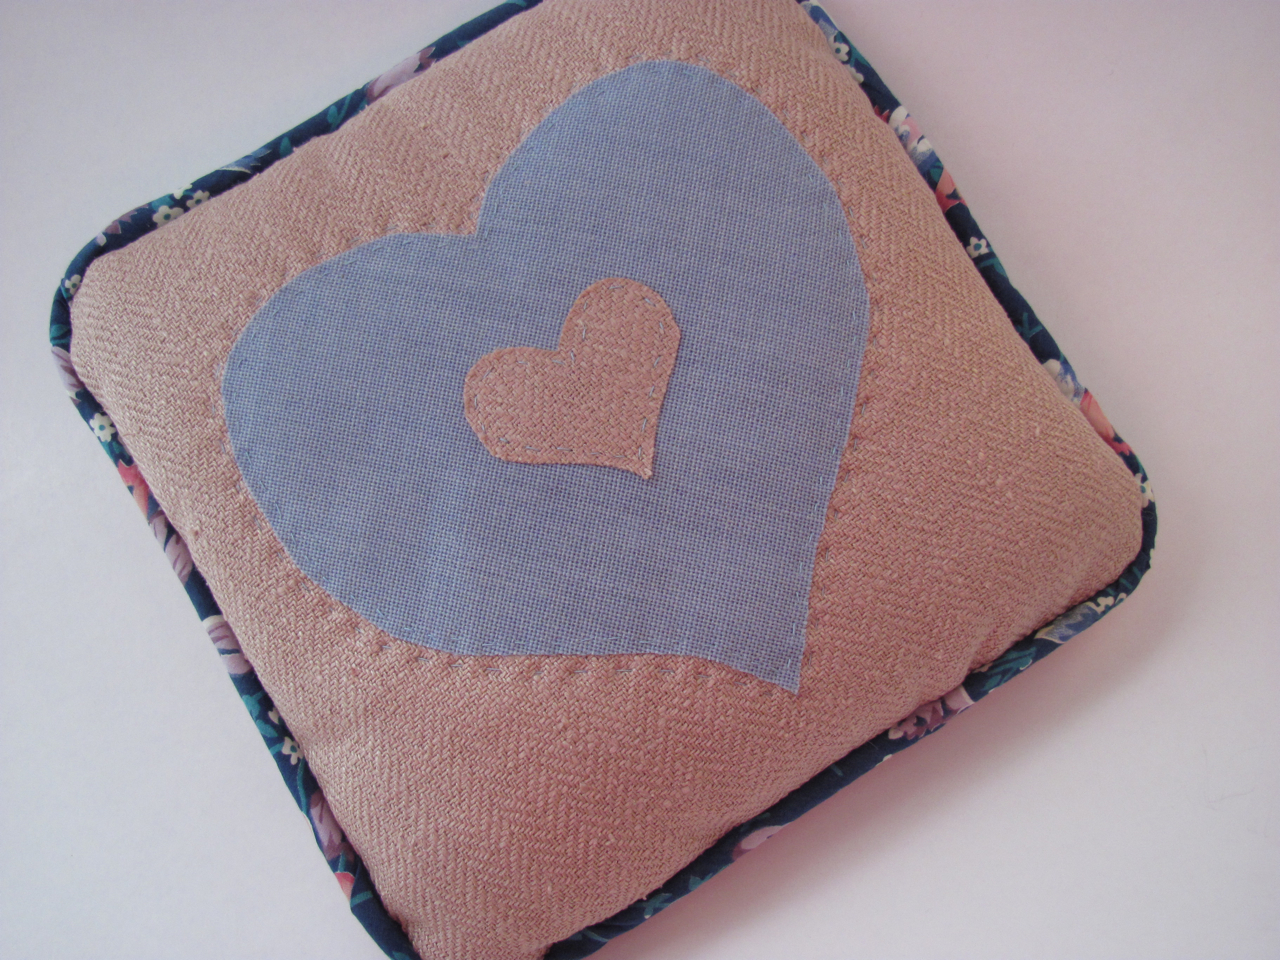 Hang Around Chair Pottery Barn Tan Accent The Craft Tutor: Upcycle! Make Pillows From Thrift Shop Clothes